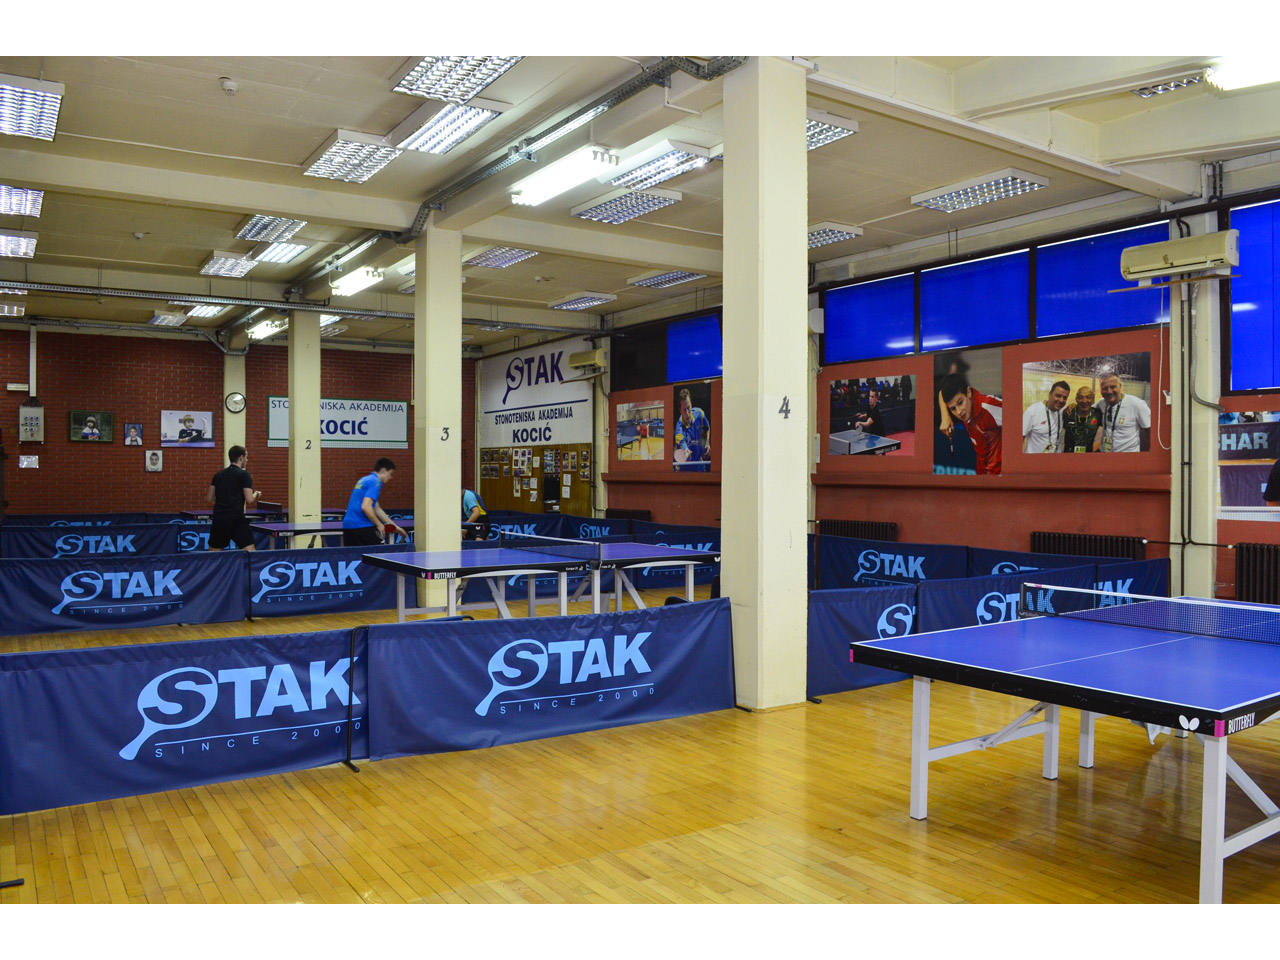 TABLE TENNIS ACADEMY KOCIC Sport facilities Beograd